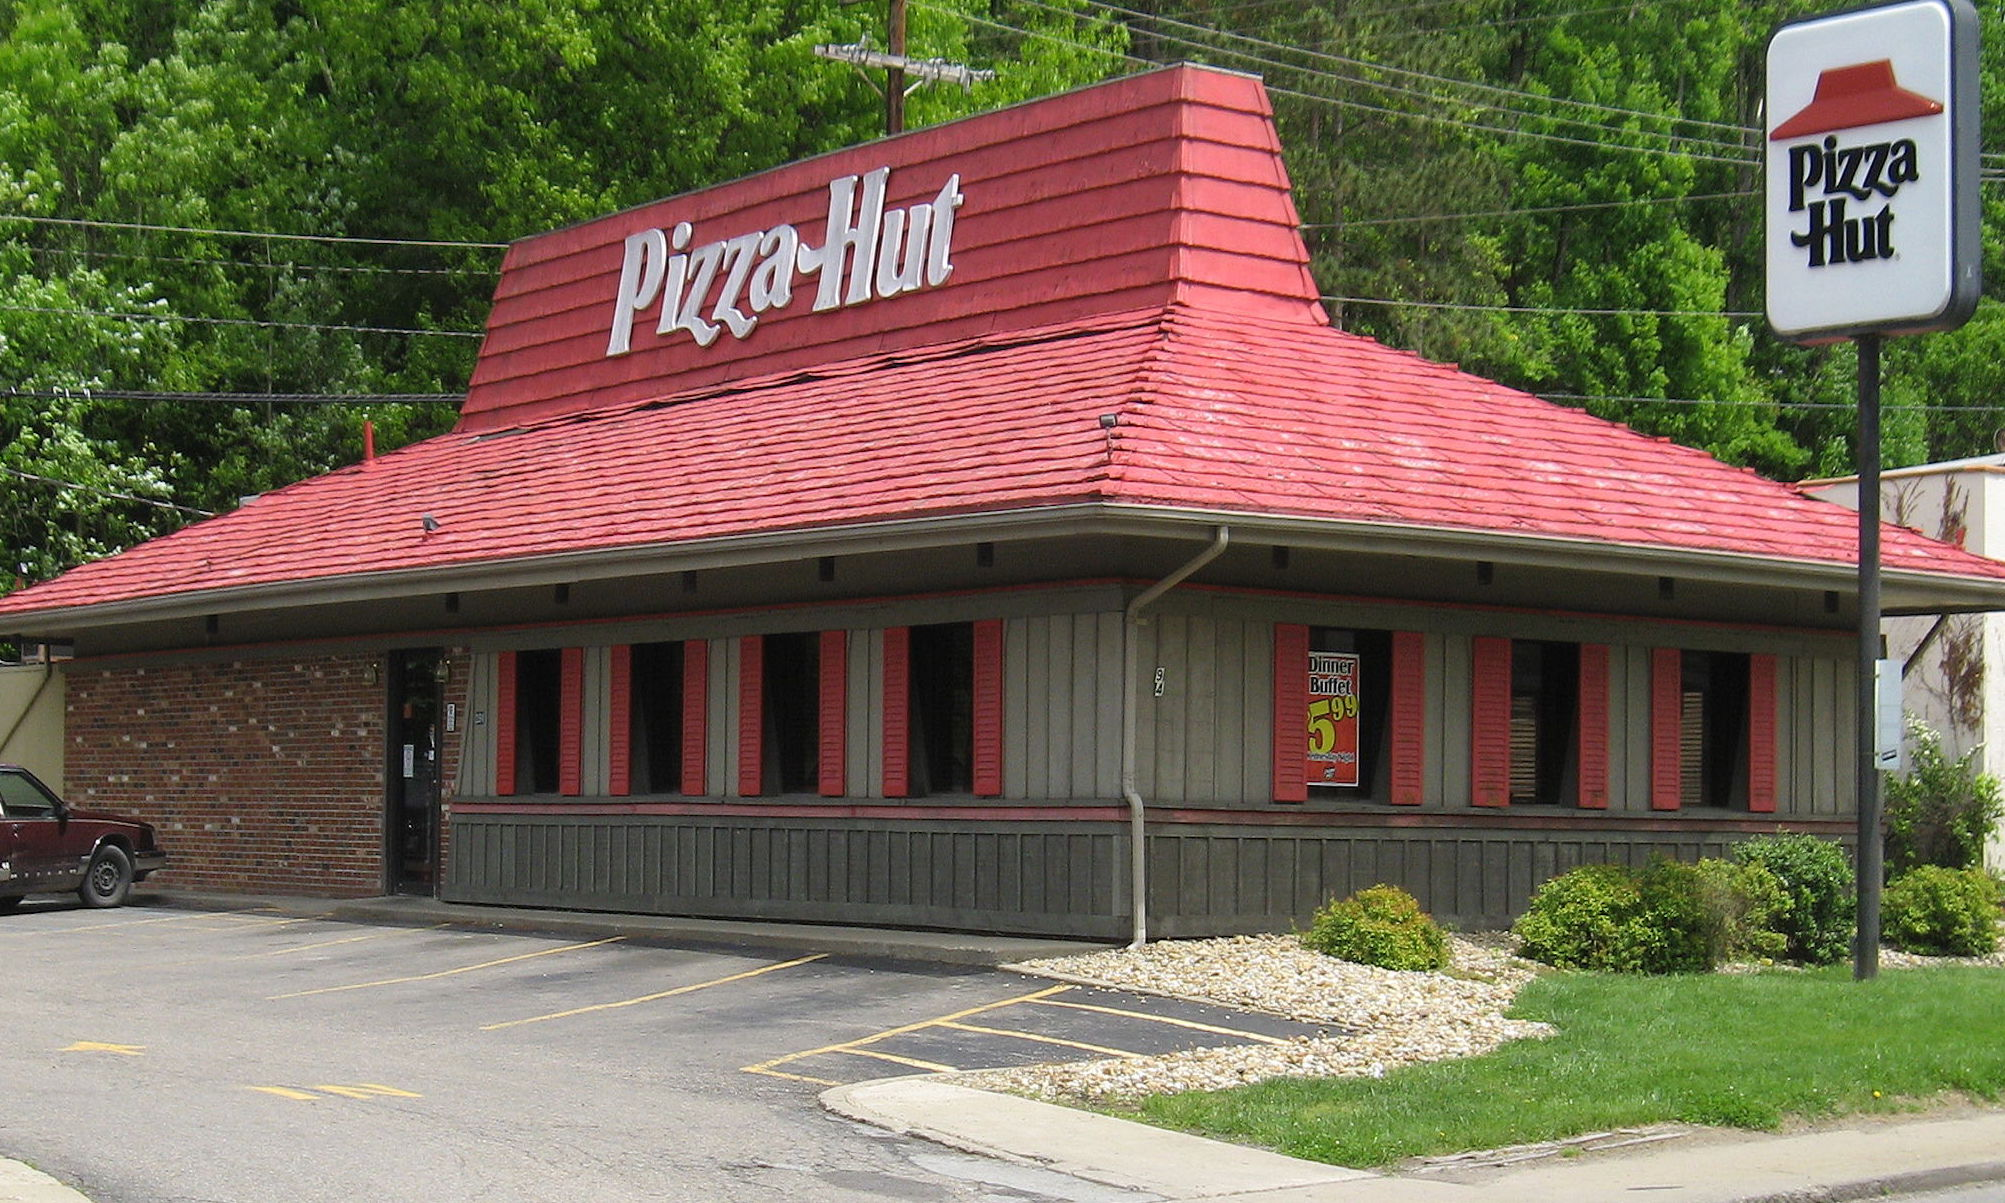 history of pizza hut For nearly six decades, pizza hut has been slinging hot, cheesy pies to hungry consumers all over the world there are more than 15,000 locations in over 90 countries, and pizza hut us's parent company, yum brands, is no 713 on the forbes global 2000 list with an estimated market cap of $346.